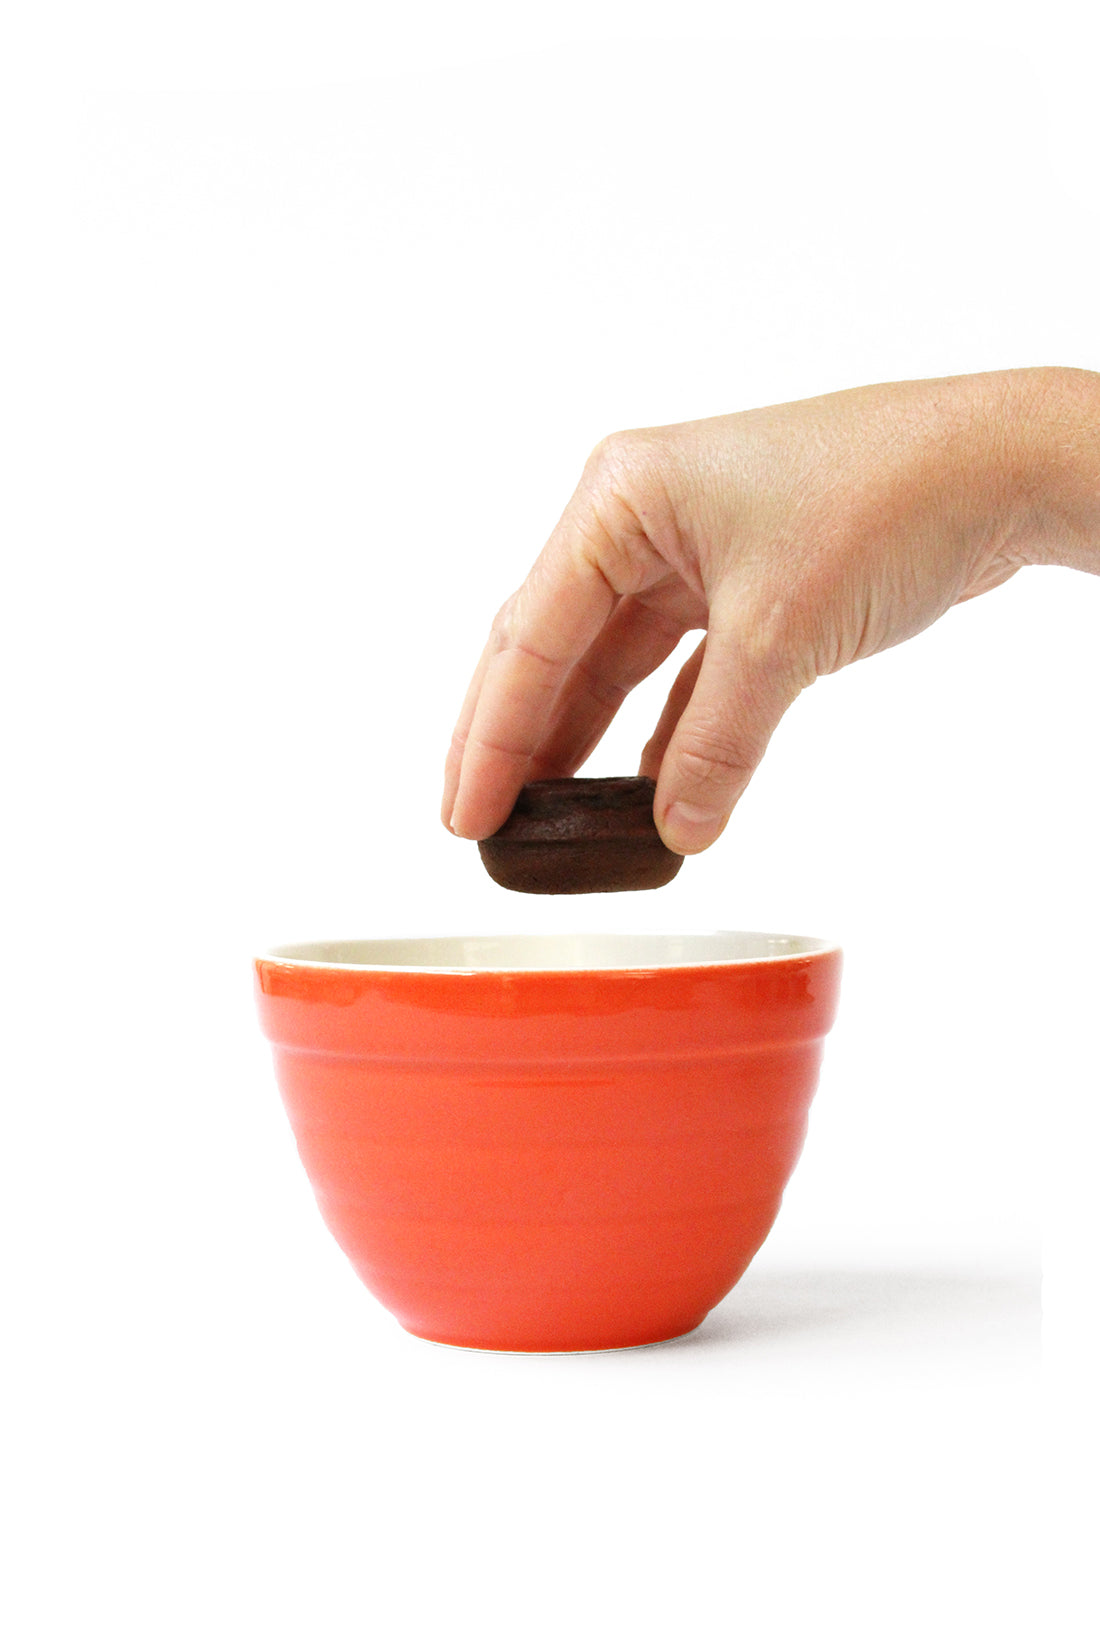 Image of the side of a hand dipping an unfrosted Miss Jones Baking Co Thin Mint Donuts into a red mixing bowl